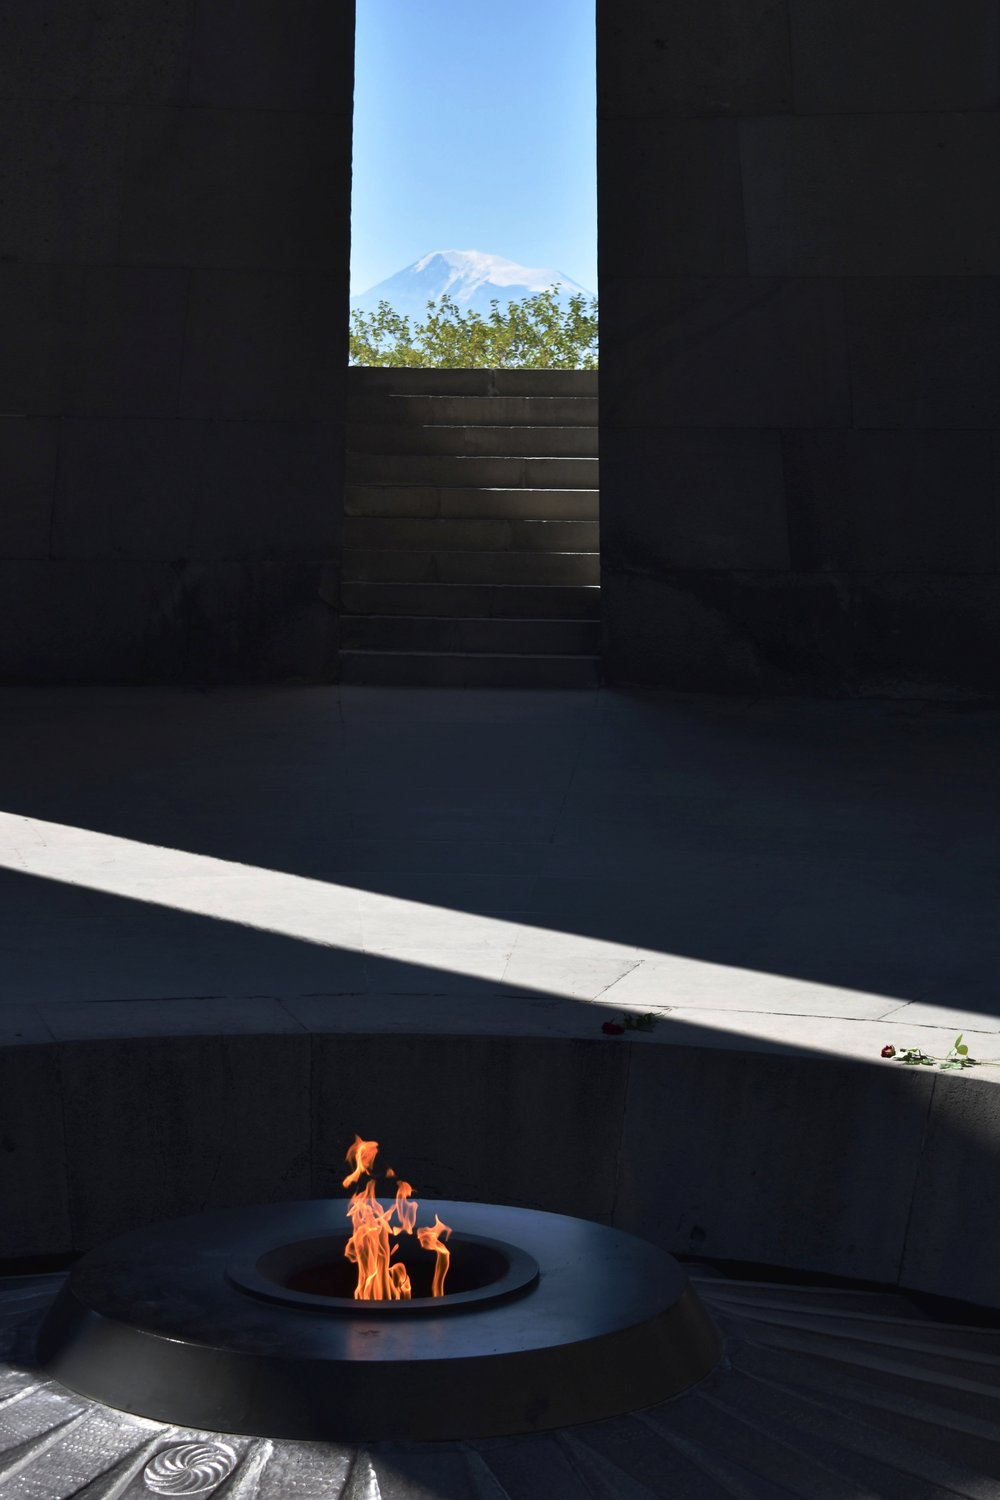 Standing inside the Memorial, with the eternal flame, and looking out at Mt. Ararat.